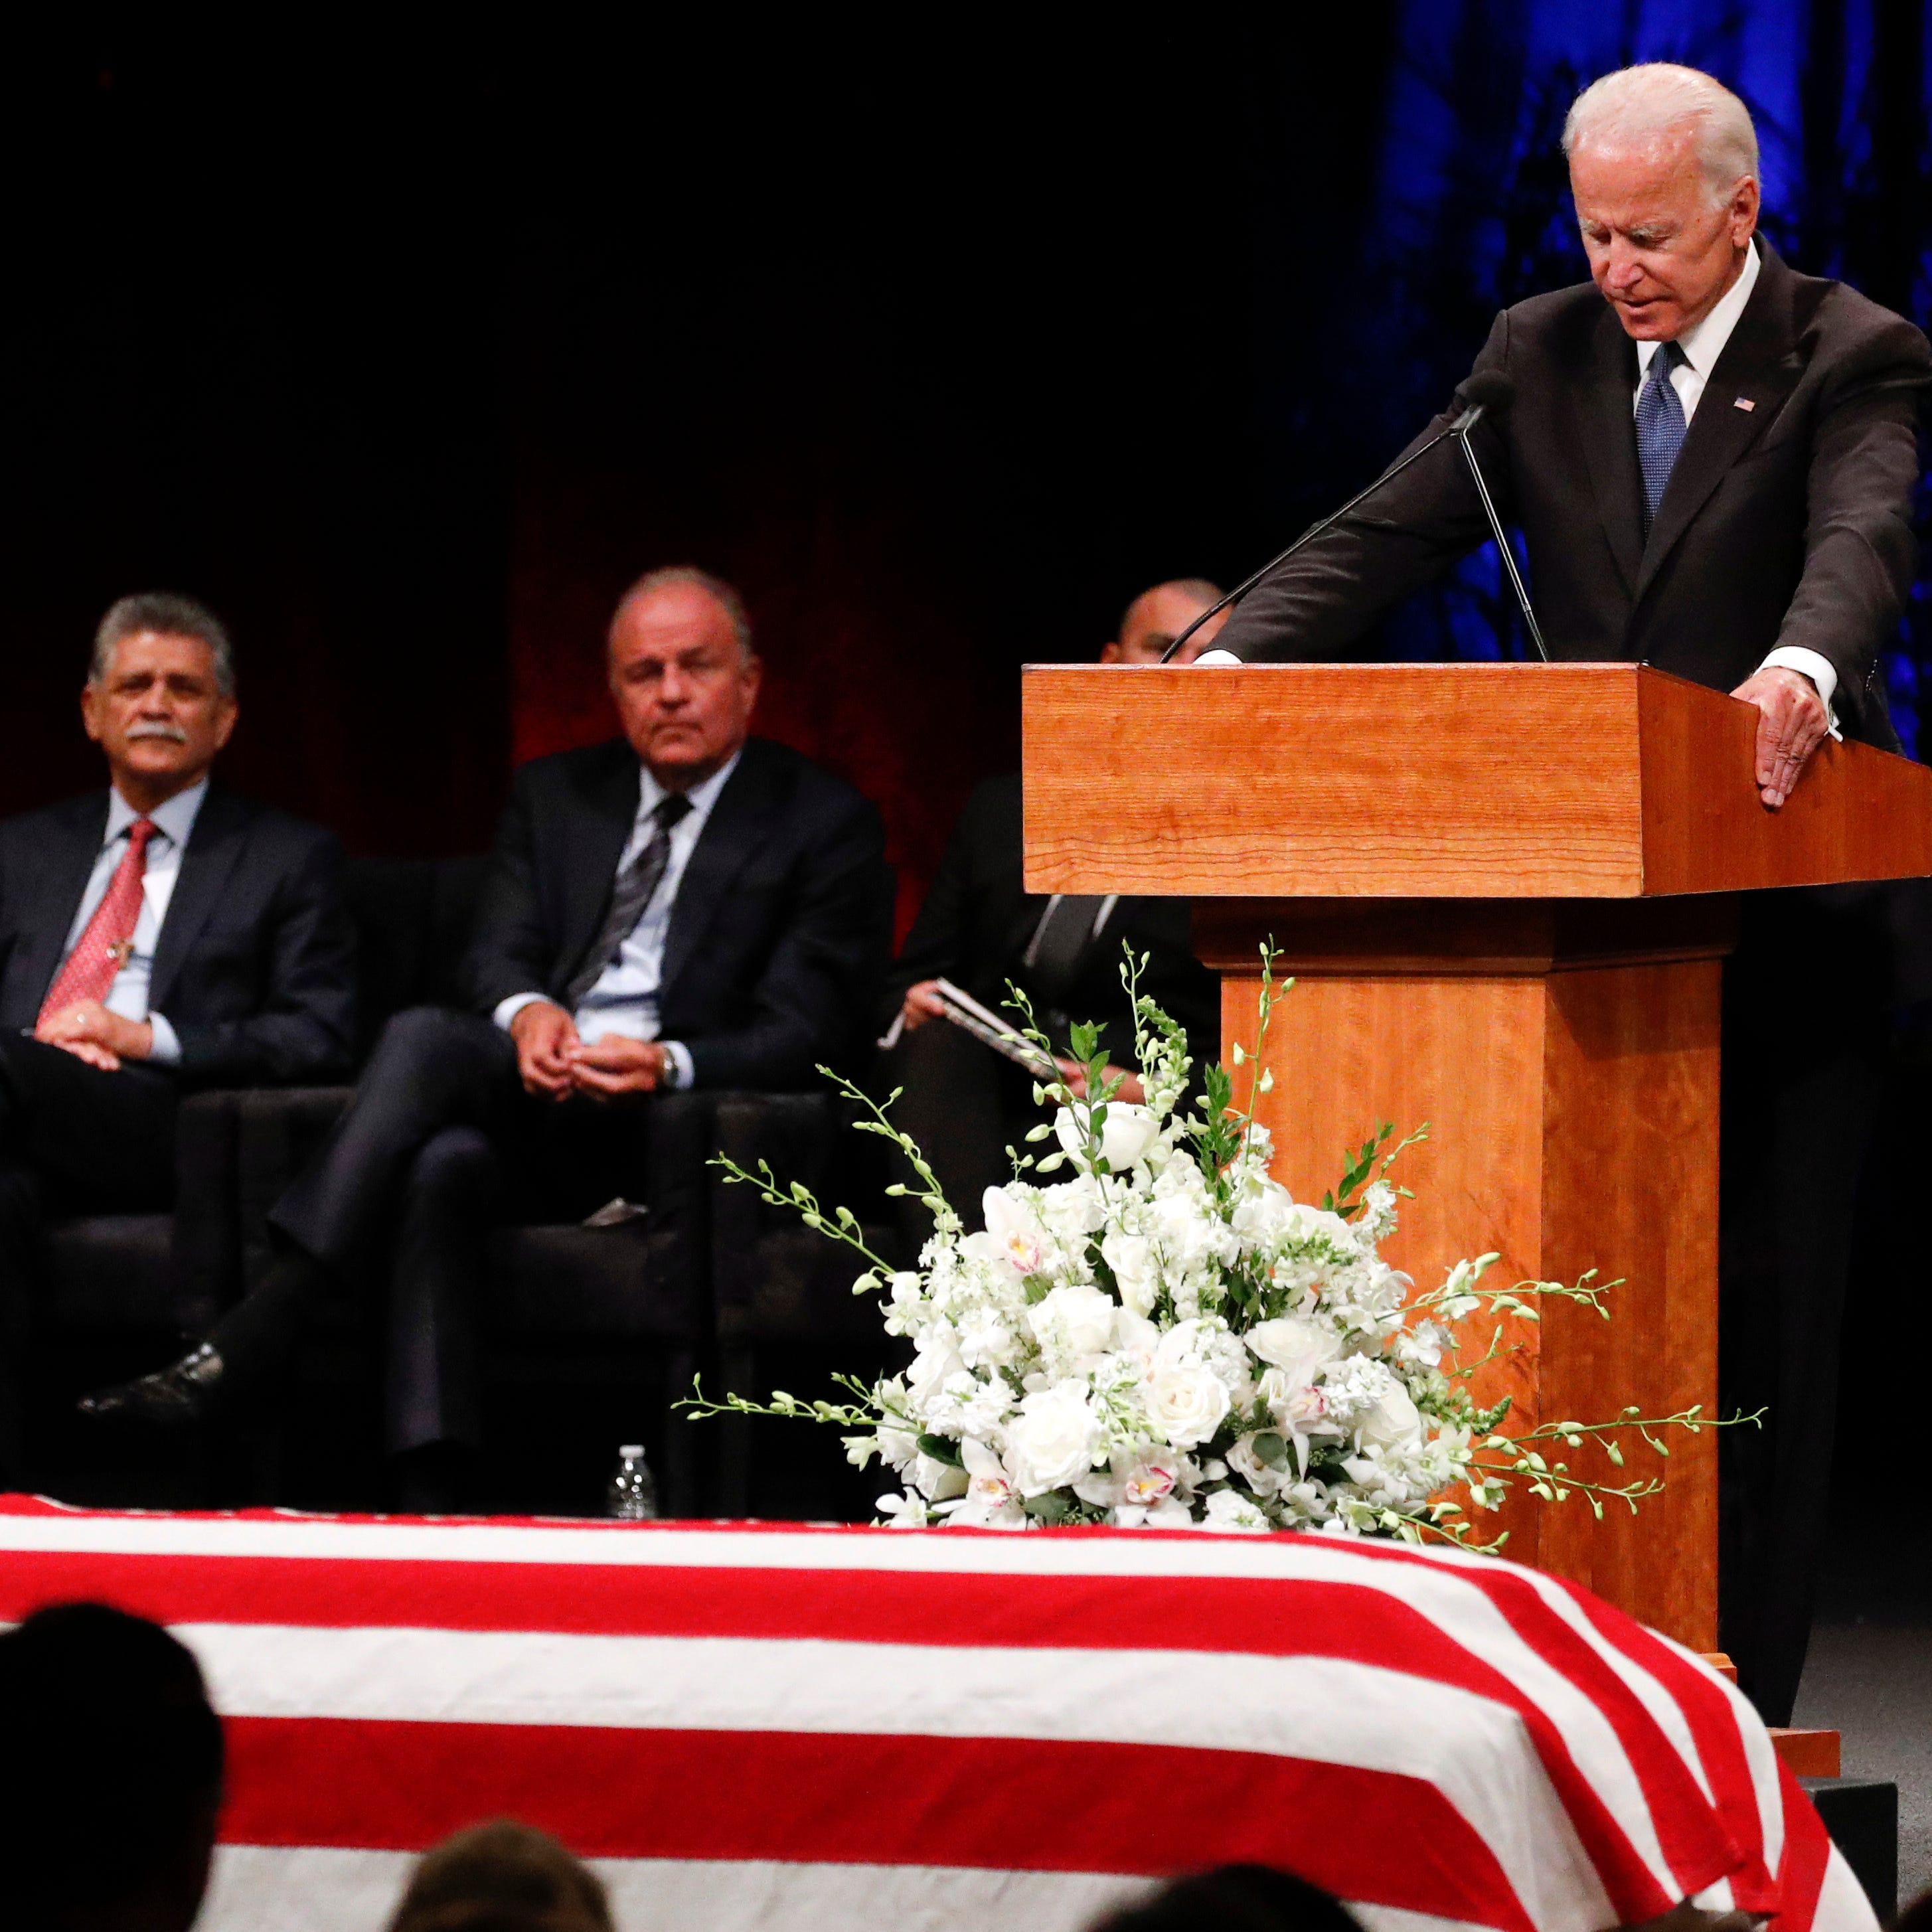 If you've lost someone close, you felt it at John McCain's Phoenix memorial service